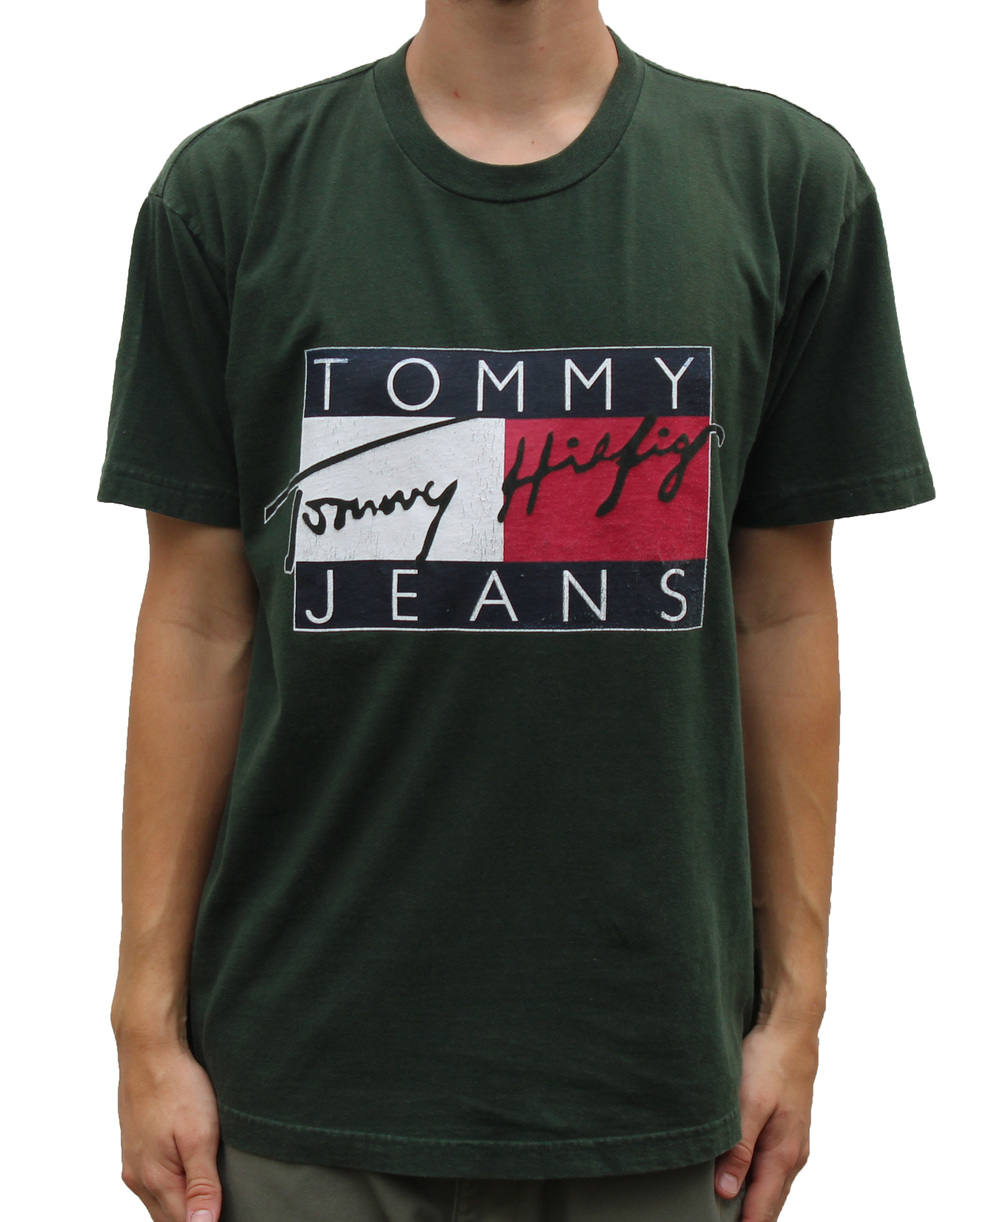 5eaced2d Vintage 90s Tommy Hilfiger Tommy Jeans forest green signature t shirt.